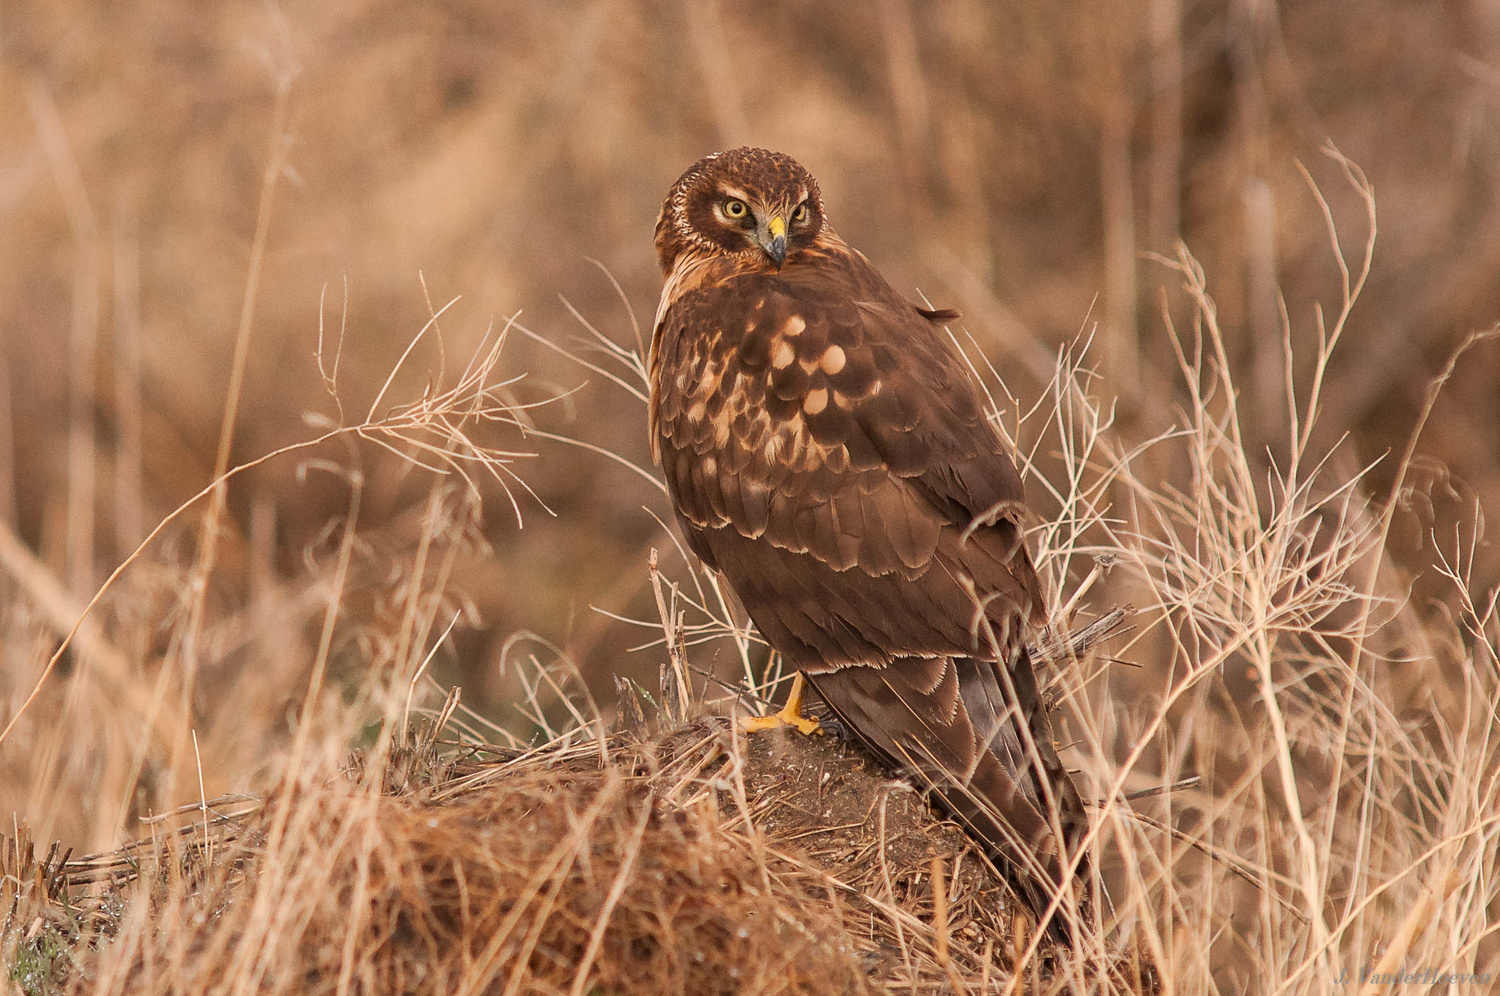 Marsh Hawk by Jake VanderHoeven